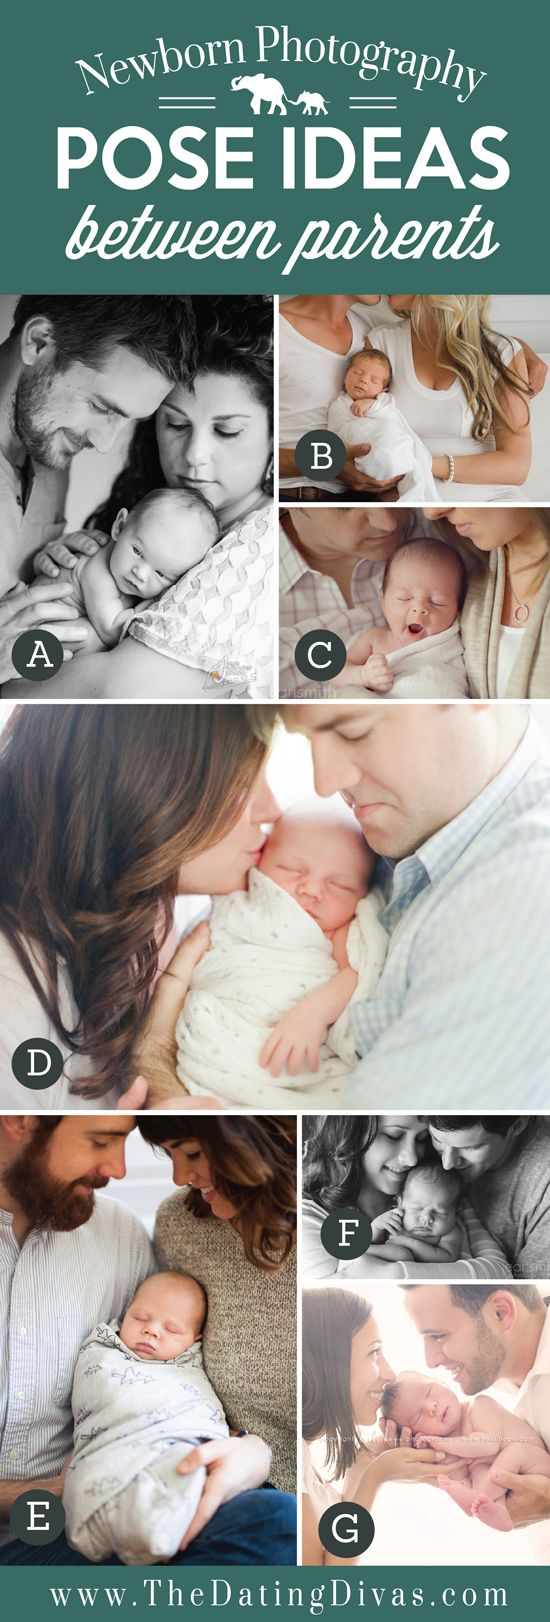 Precious-Newborn-Photography-Pose-Ideas-with-Baby-between-Parents.jpg 550×1 622 pixels